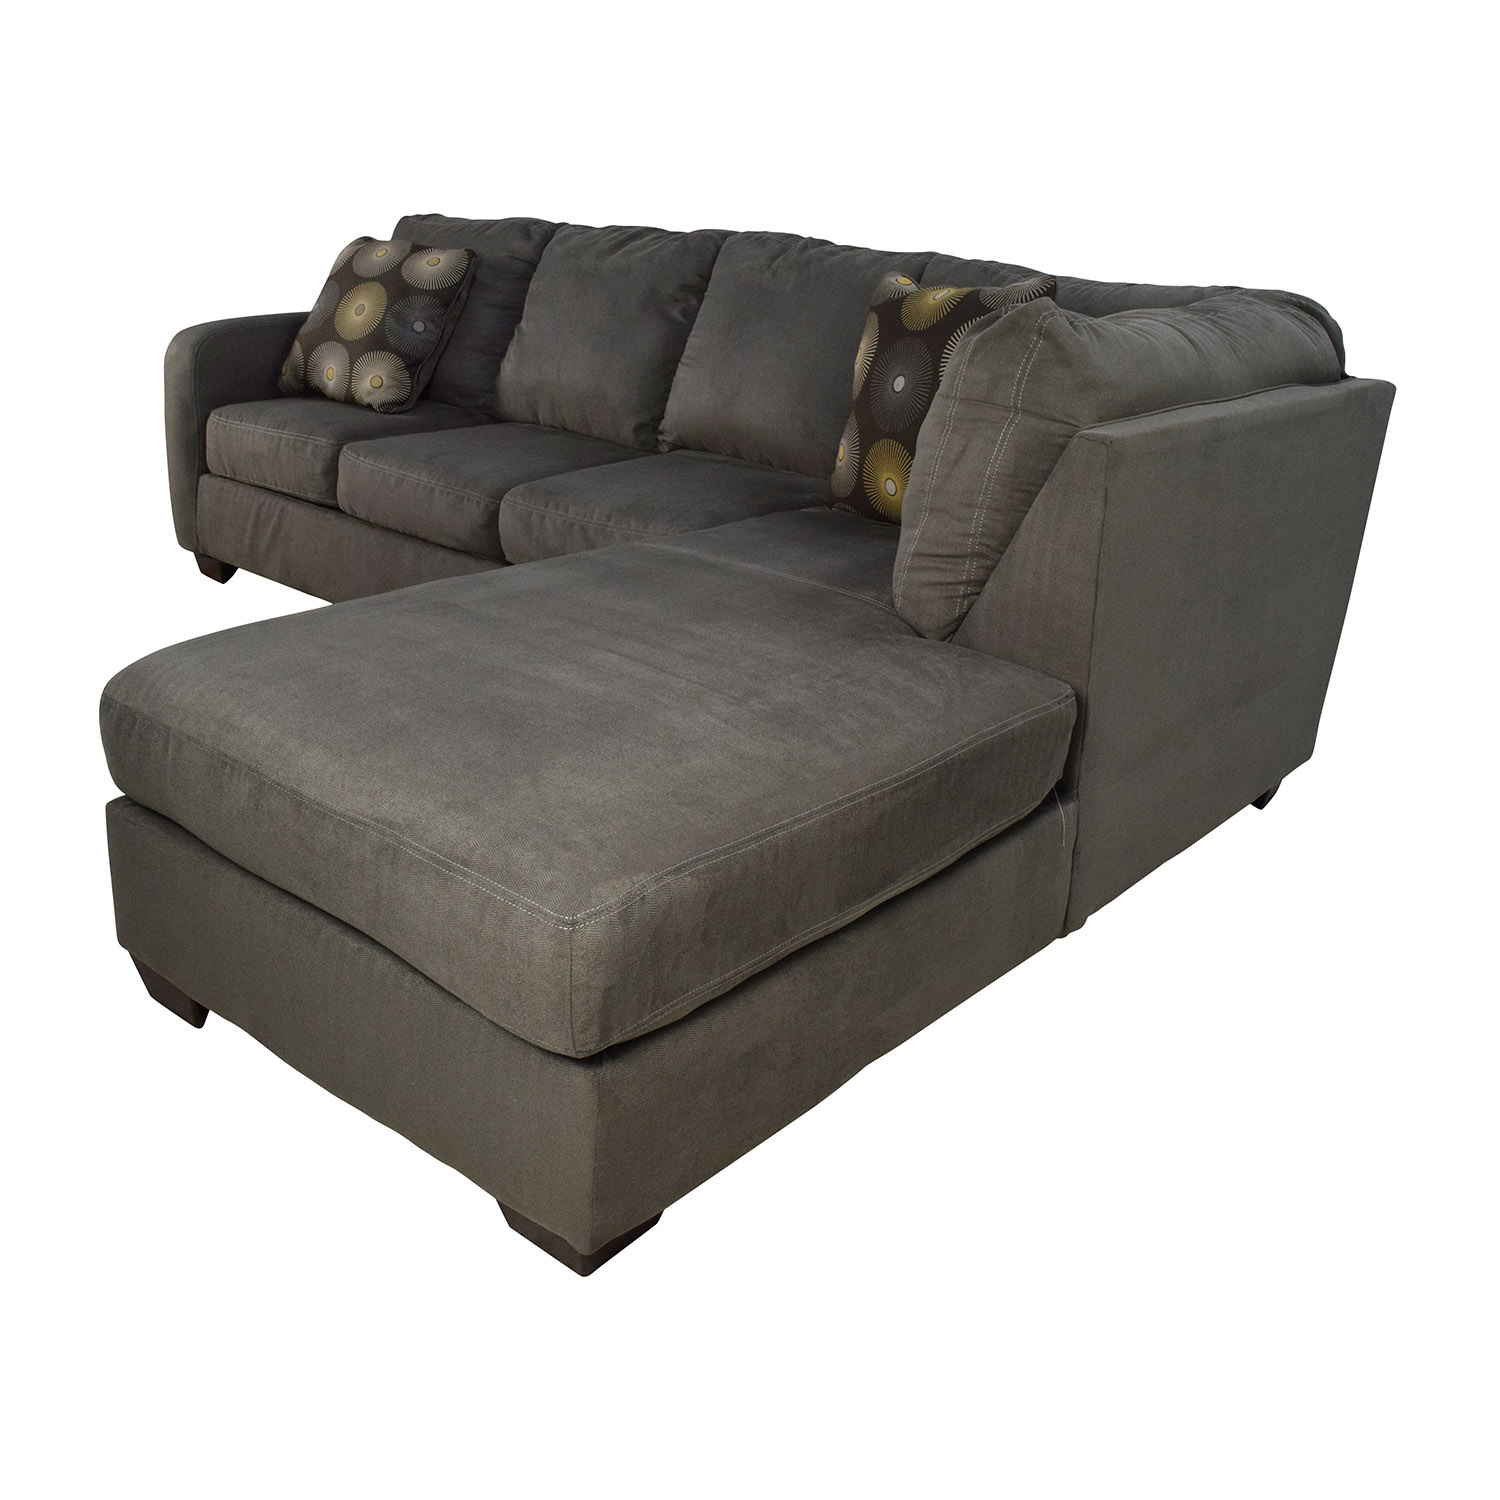 ... Ashley Furniture Ashley Furniture Waverly Gray Sectional Sofa ...